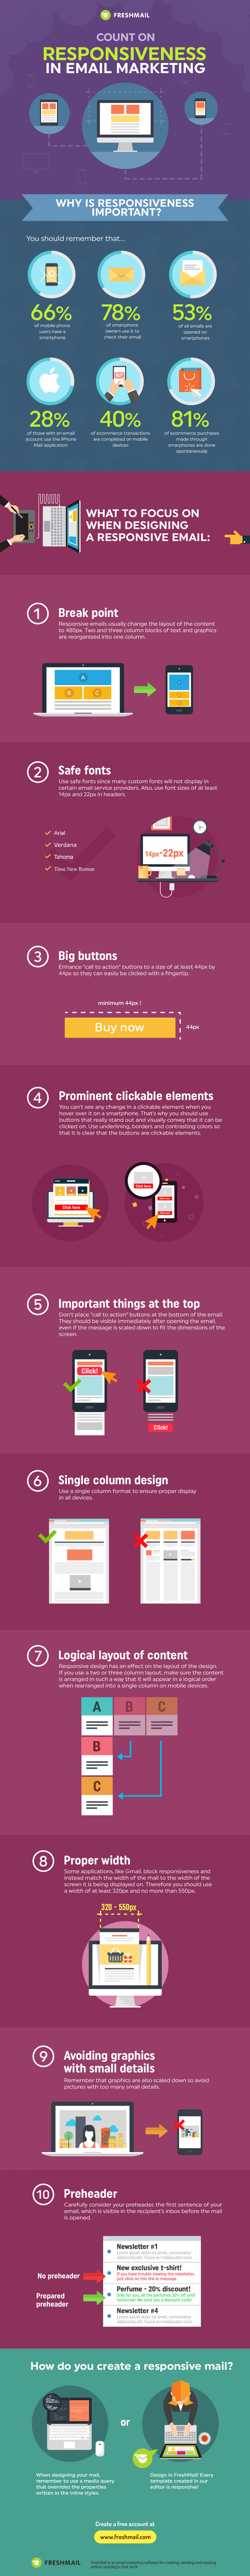 Responsive Email Newsletters Infographic Infographic